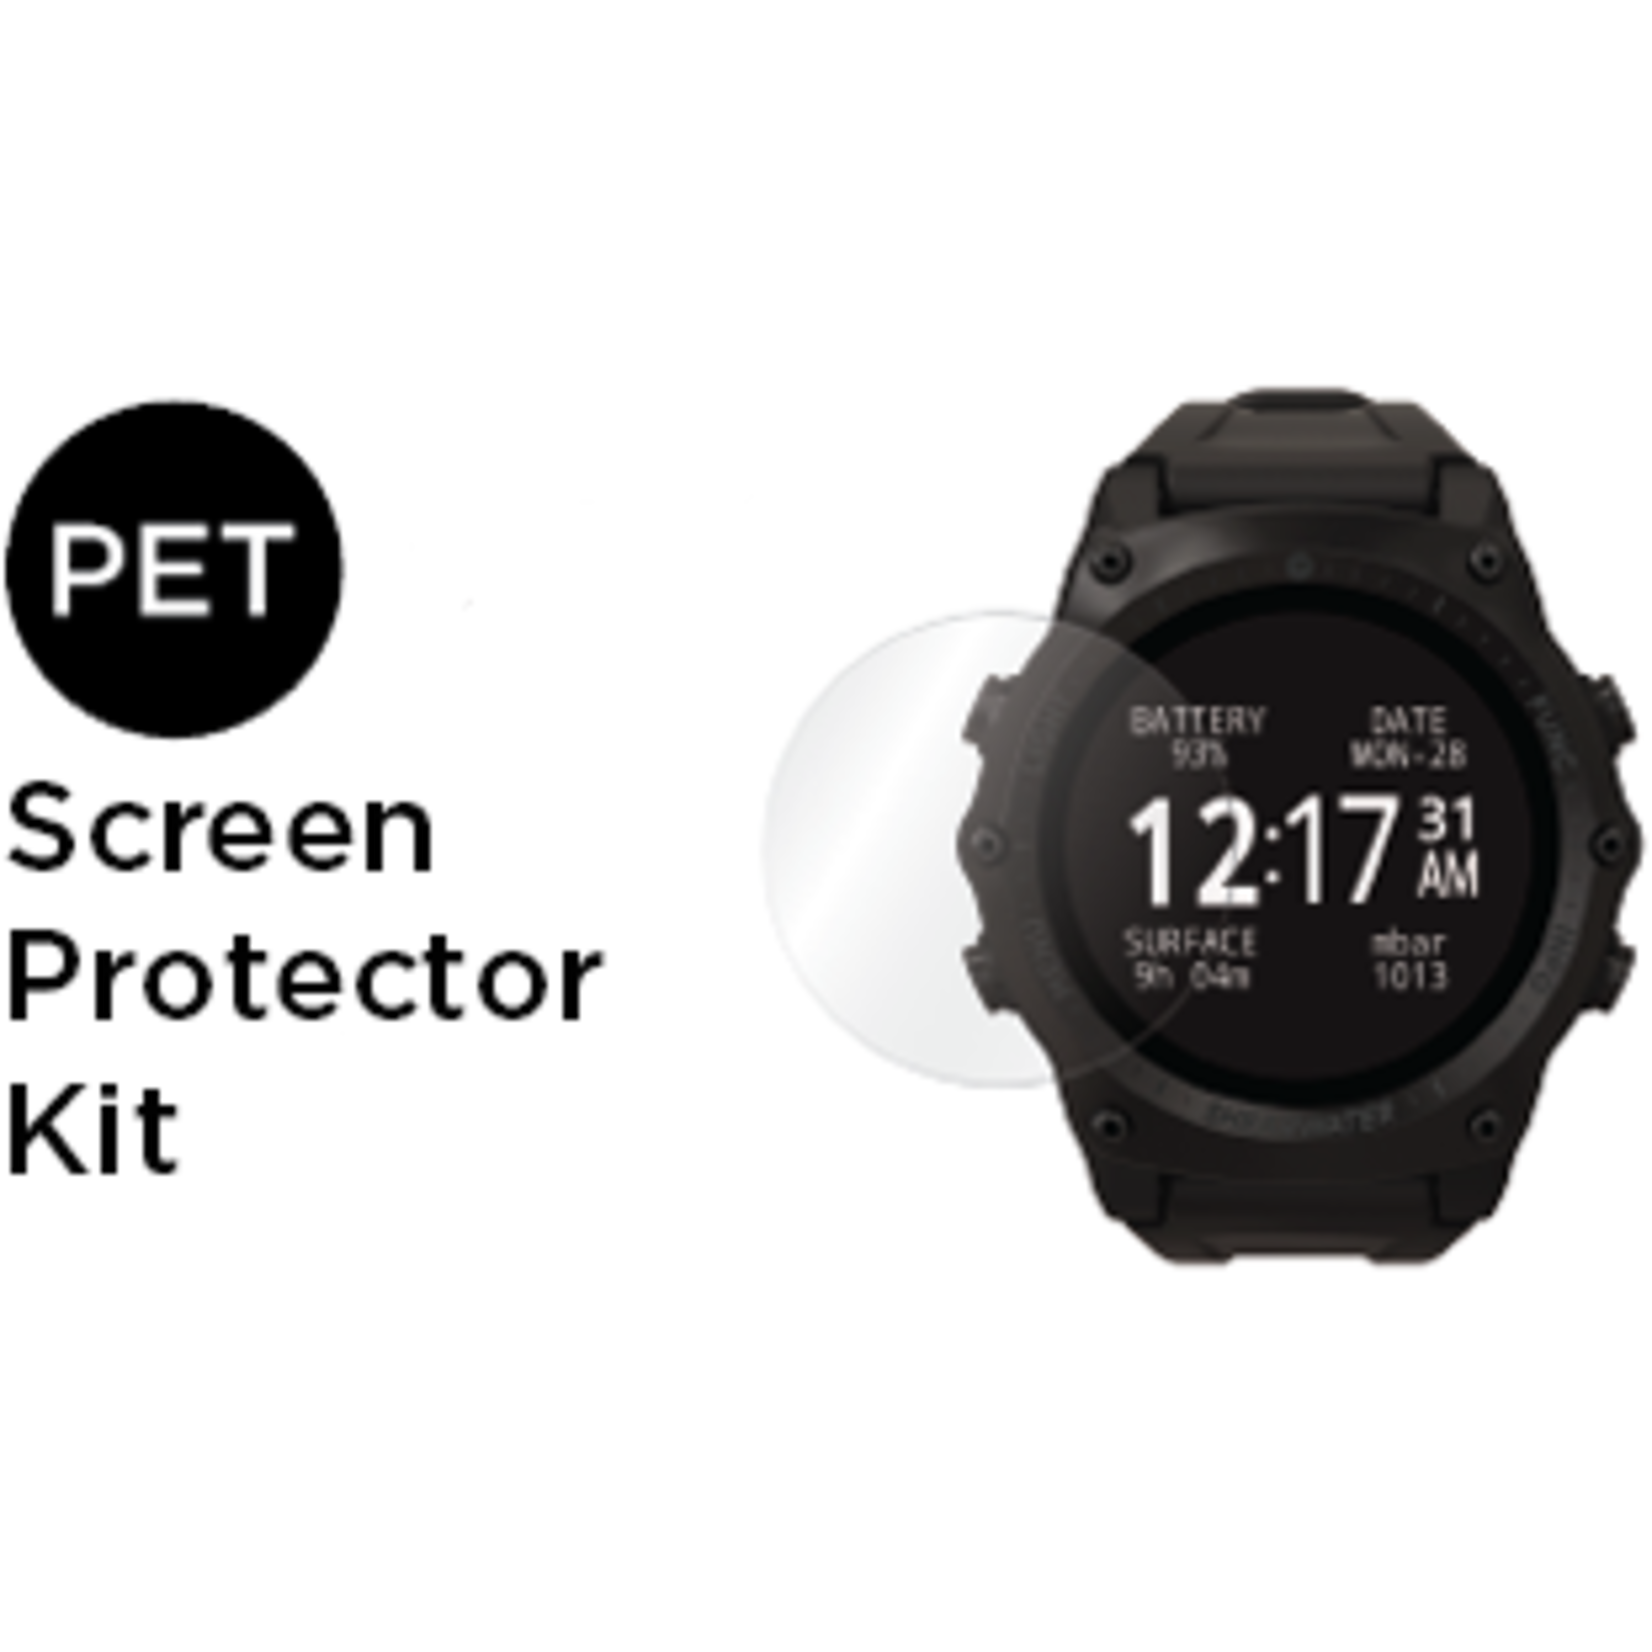 Shearwater Screen protector for Teric